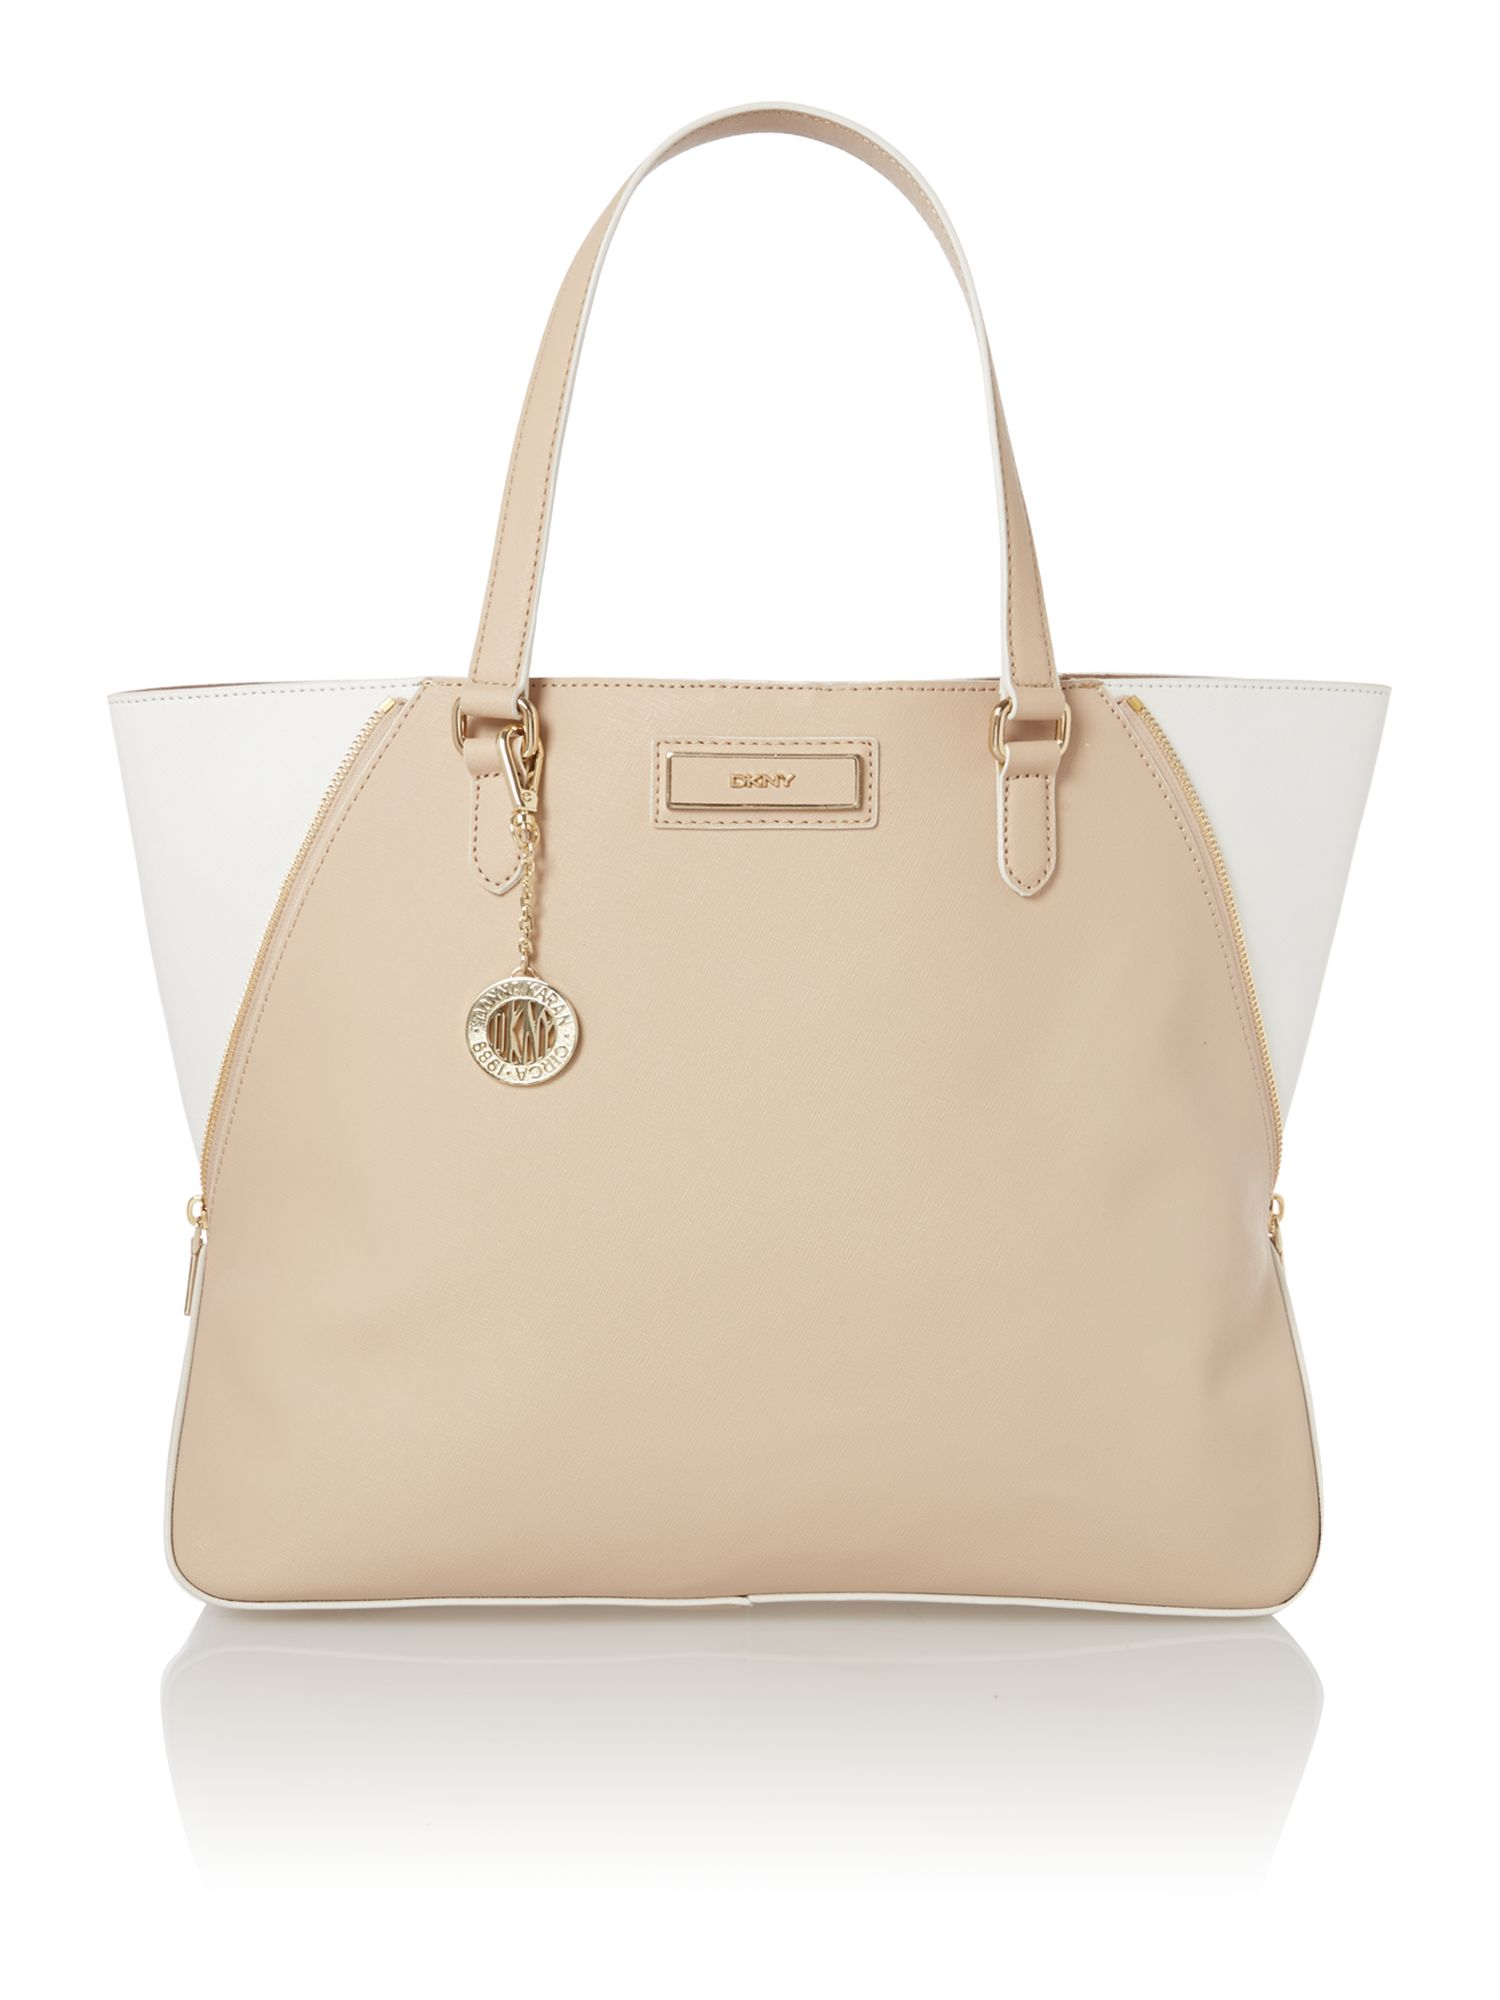 Saffiano neutral large tote bag